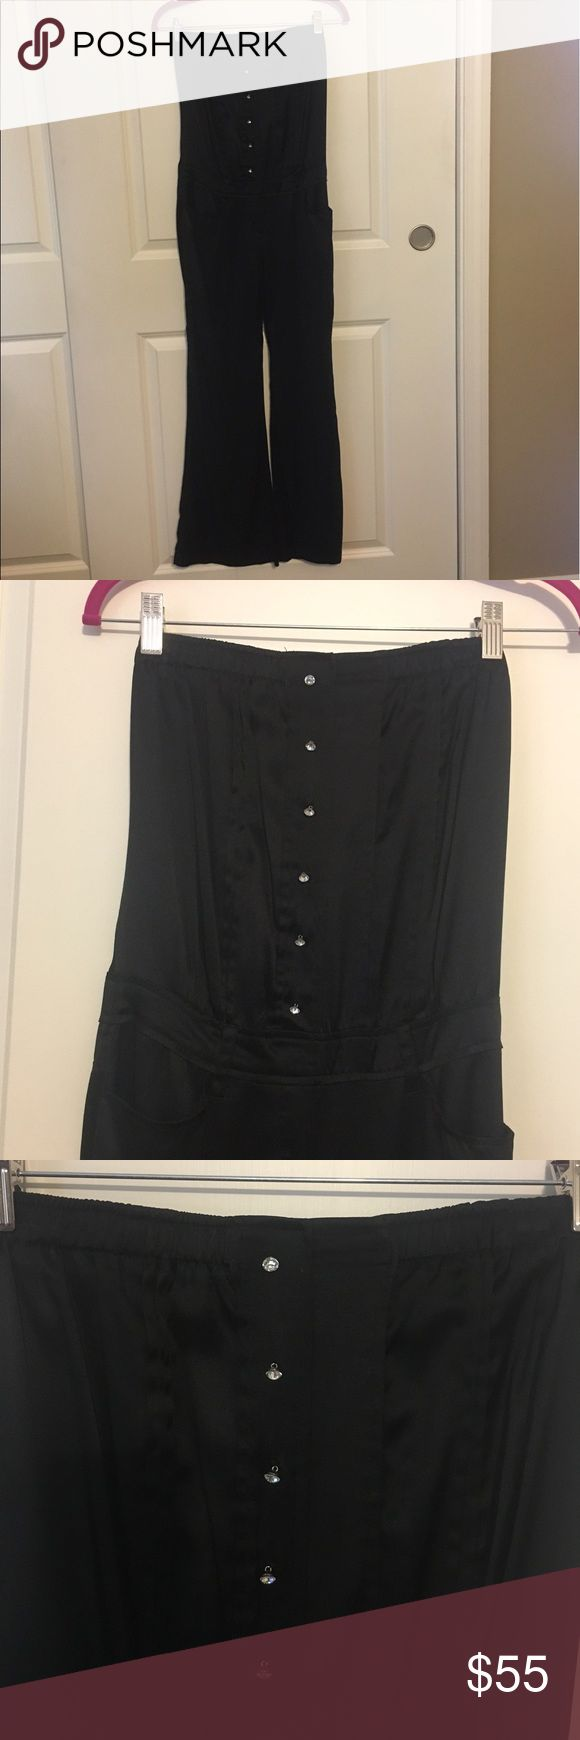 Young Fabulous and Broke jumpsuit Black strapless silk Young Fabulous and Broke jumpsuit. Open tie back. Only worn once, perfect condition. Young Fabulous & Broke Pants Jumpsuits & Rompers